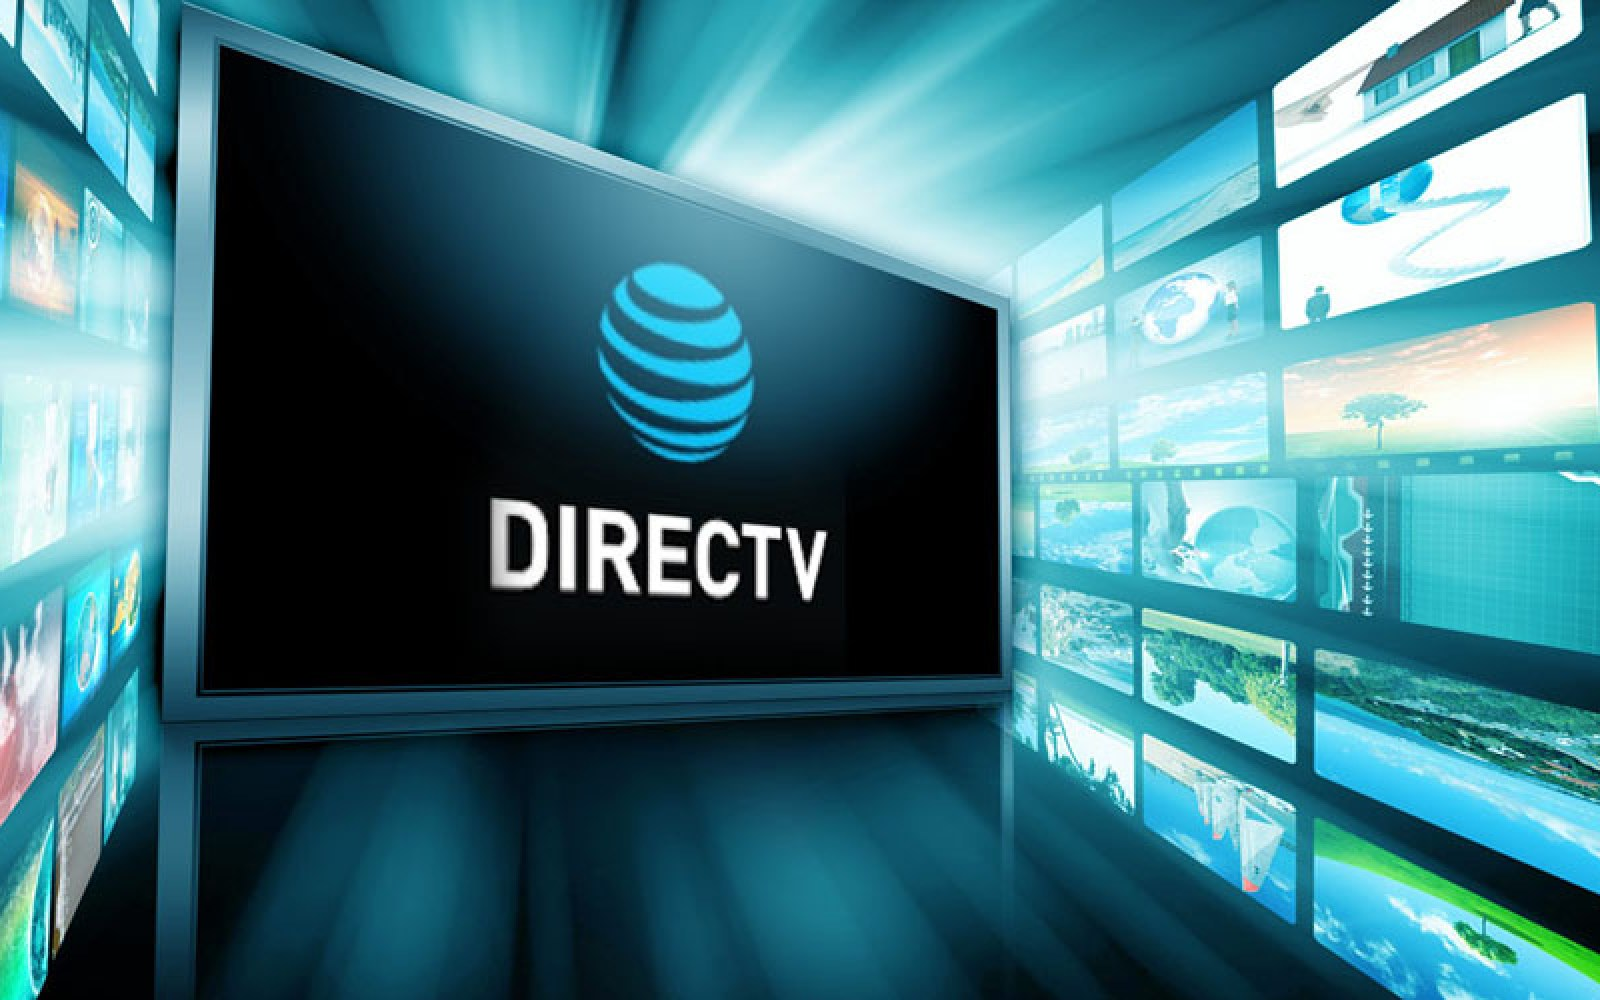 Latest DIRECTV app plus upcoming online-only package is the holy grail of cord cutting